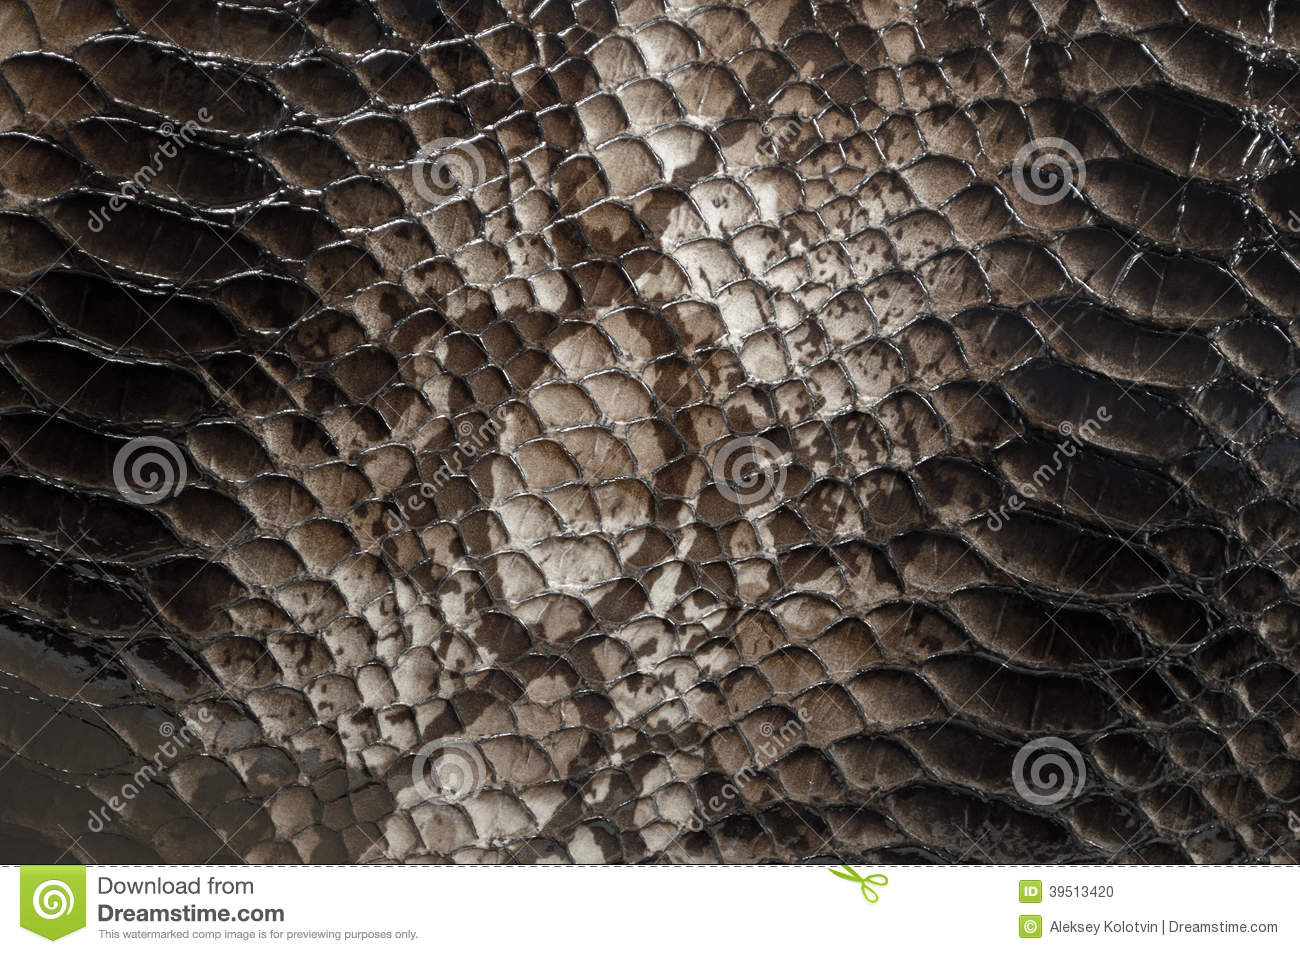 Jpg Texture Background Free Stock Photos Download 105 545: Snake Skin Pattern Background Stock Photo